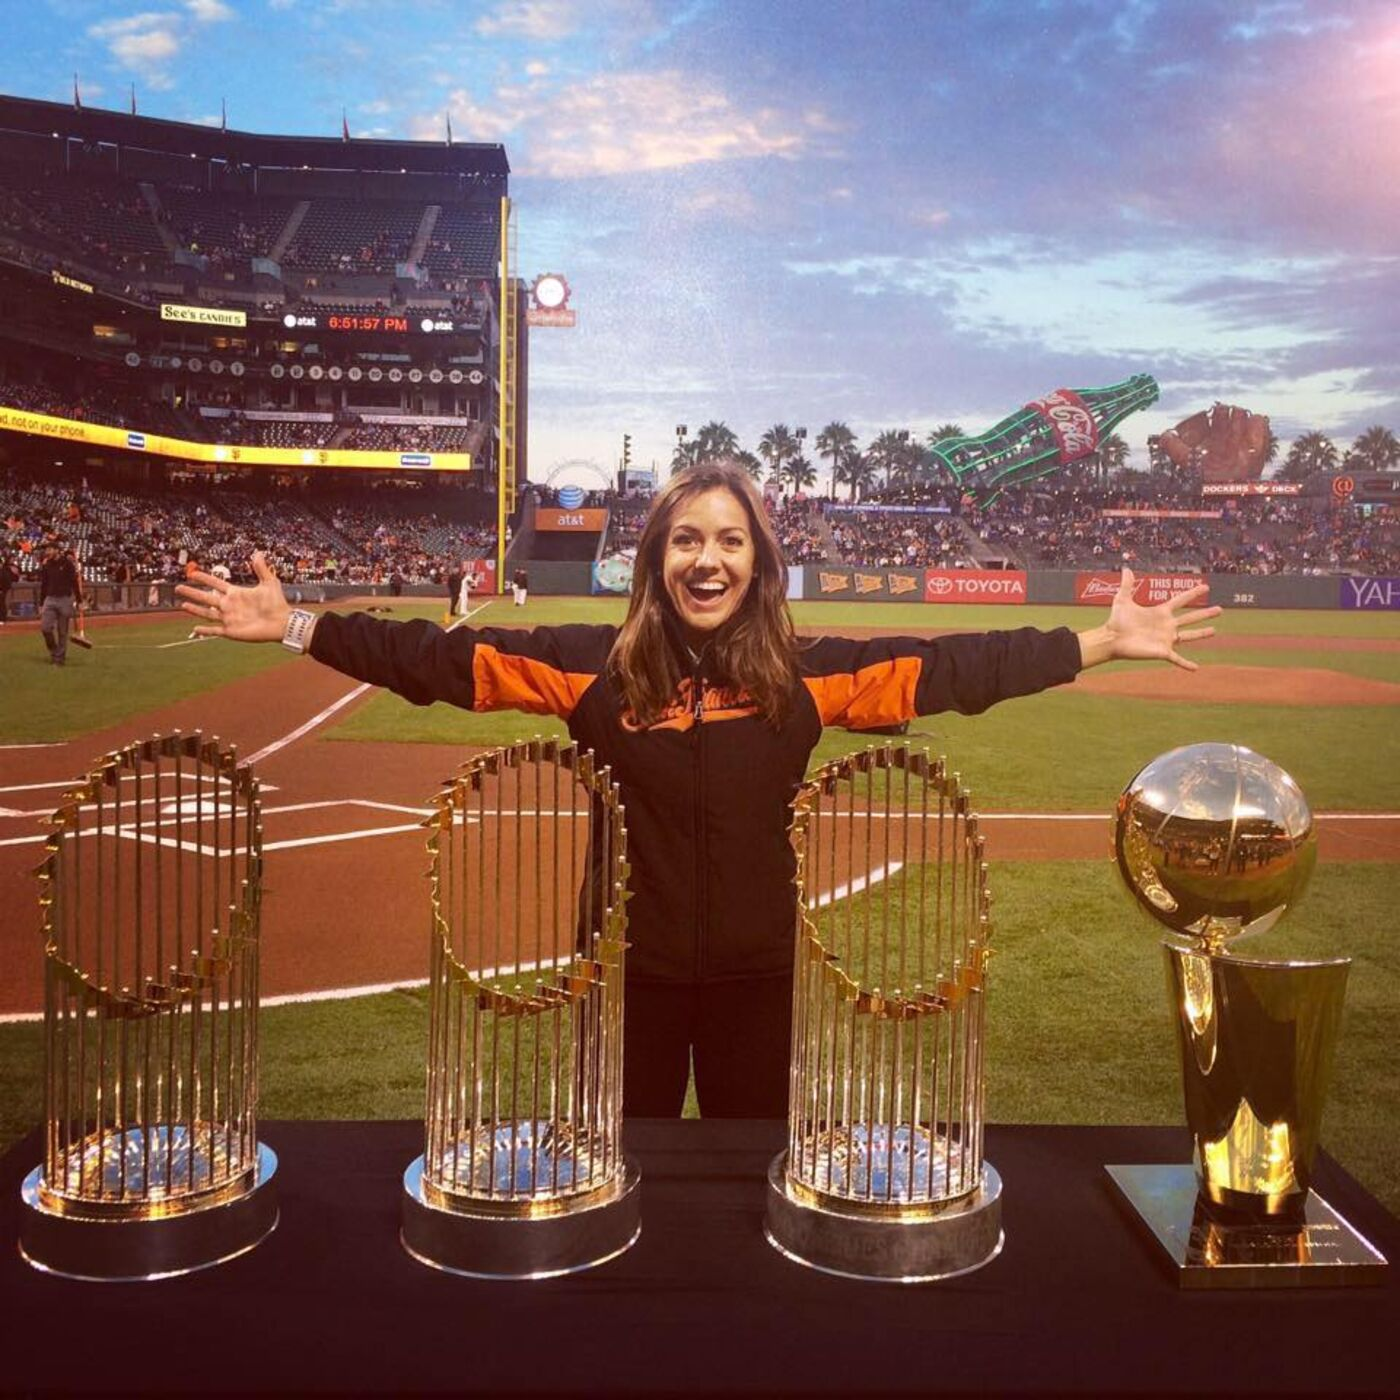 An Interview with Therese Viñal, Sports Journalist/Host of SF Giants on NBC Sports Bay Area